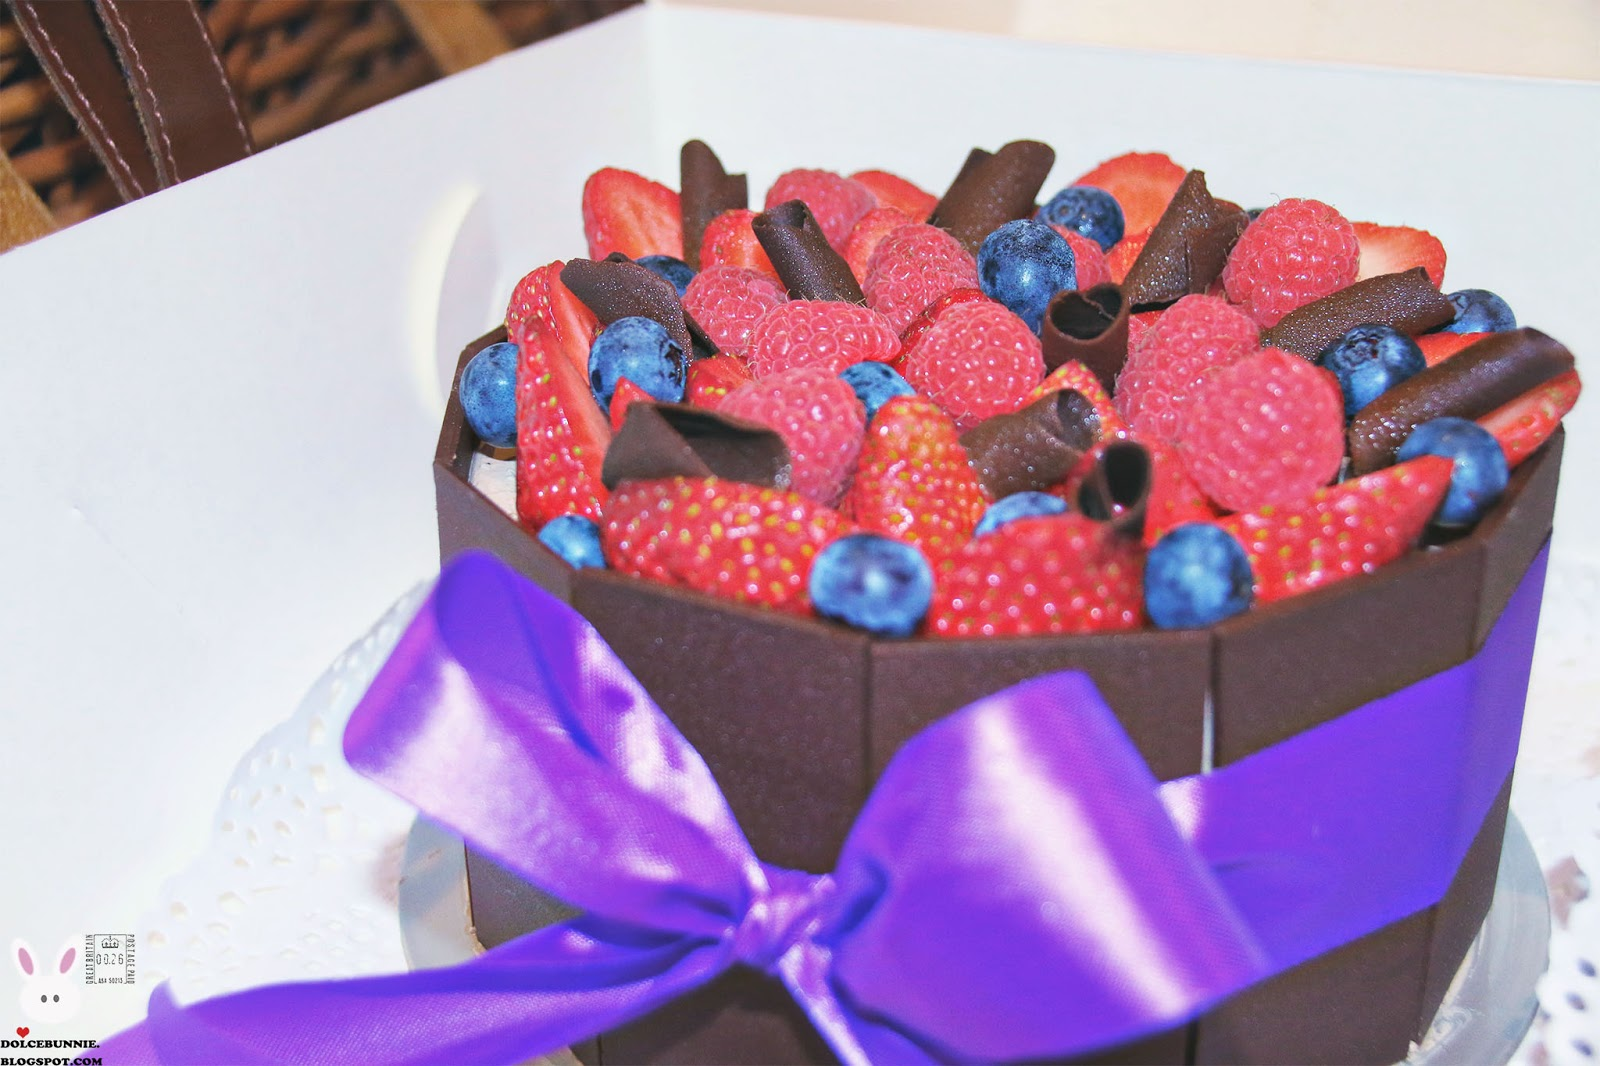 Michel's patisserie chocolate gateau